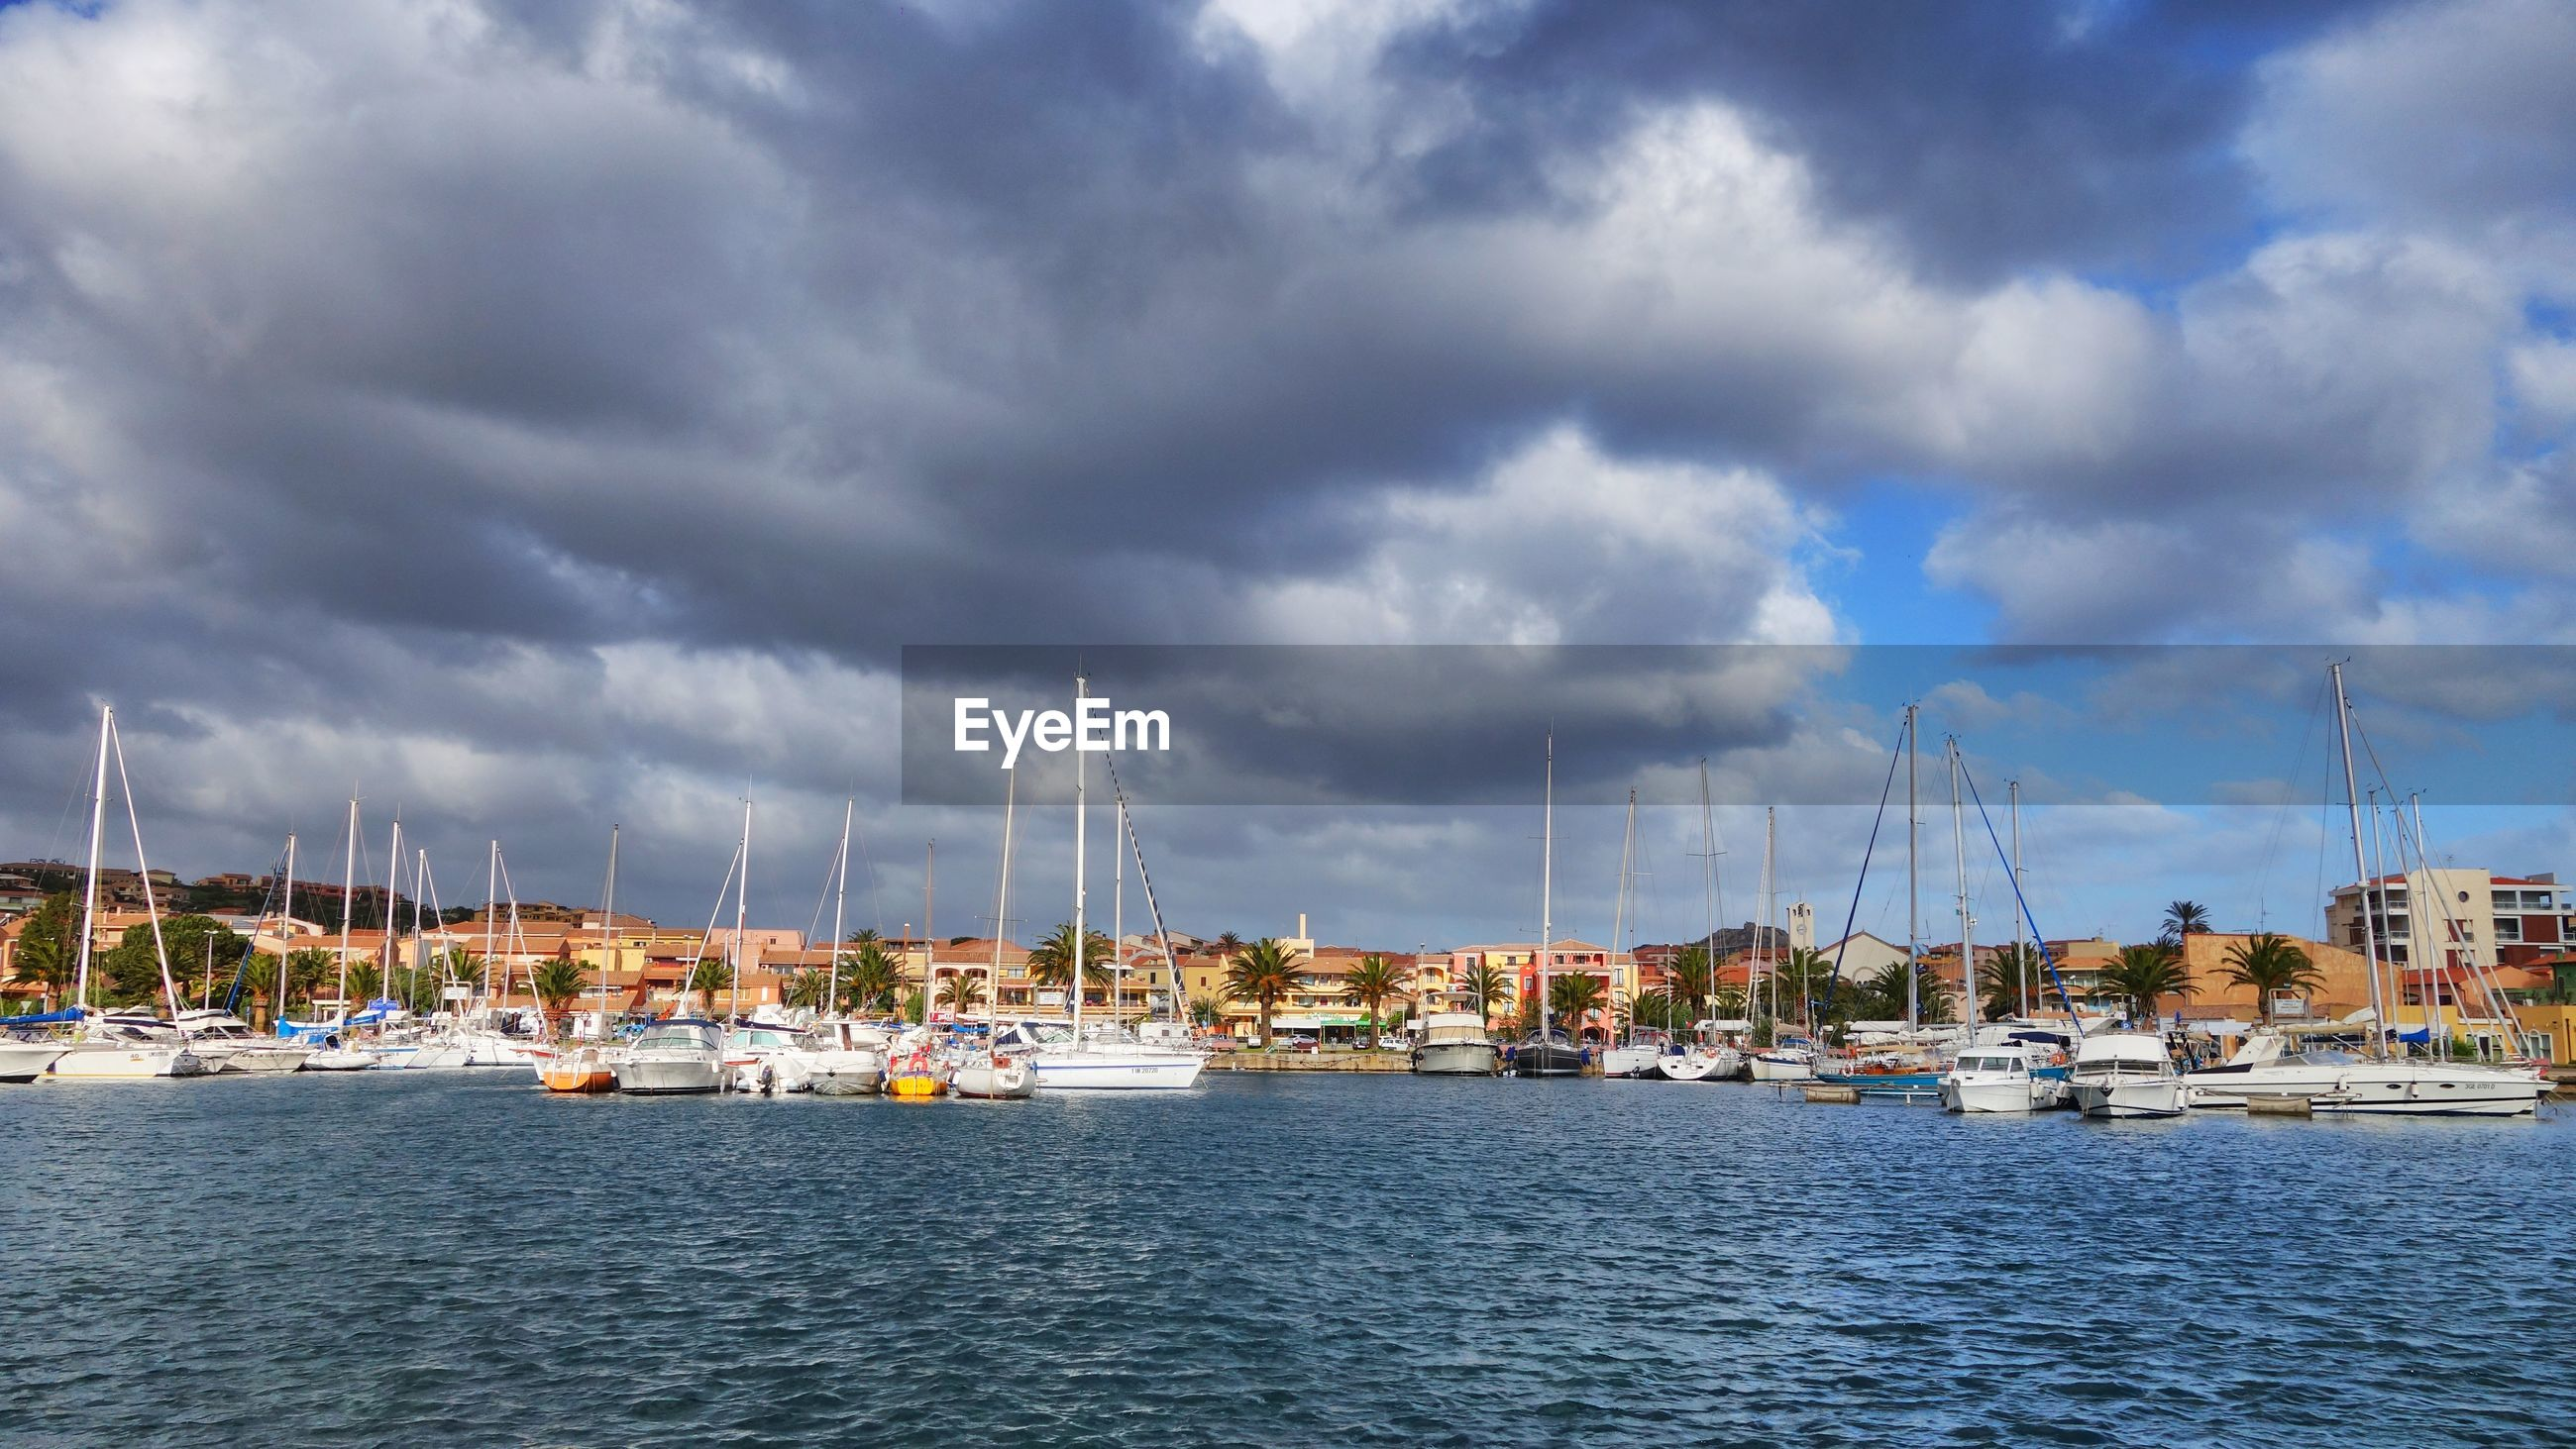 Boats moored at harbor in sea by city against cloudy sky